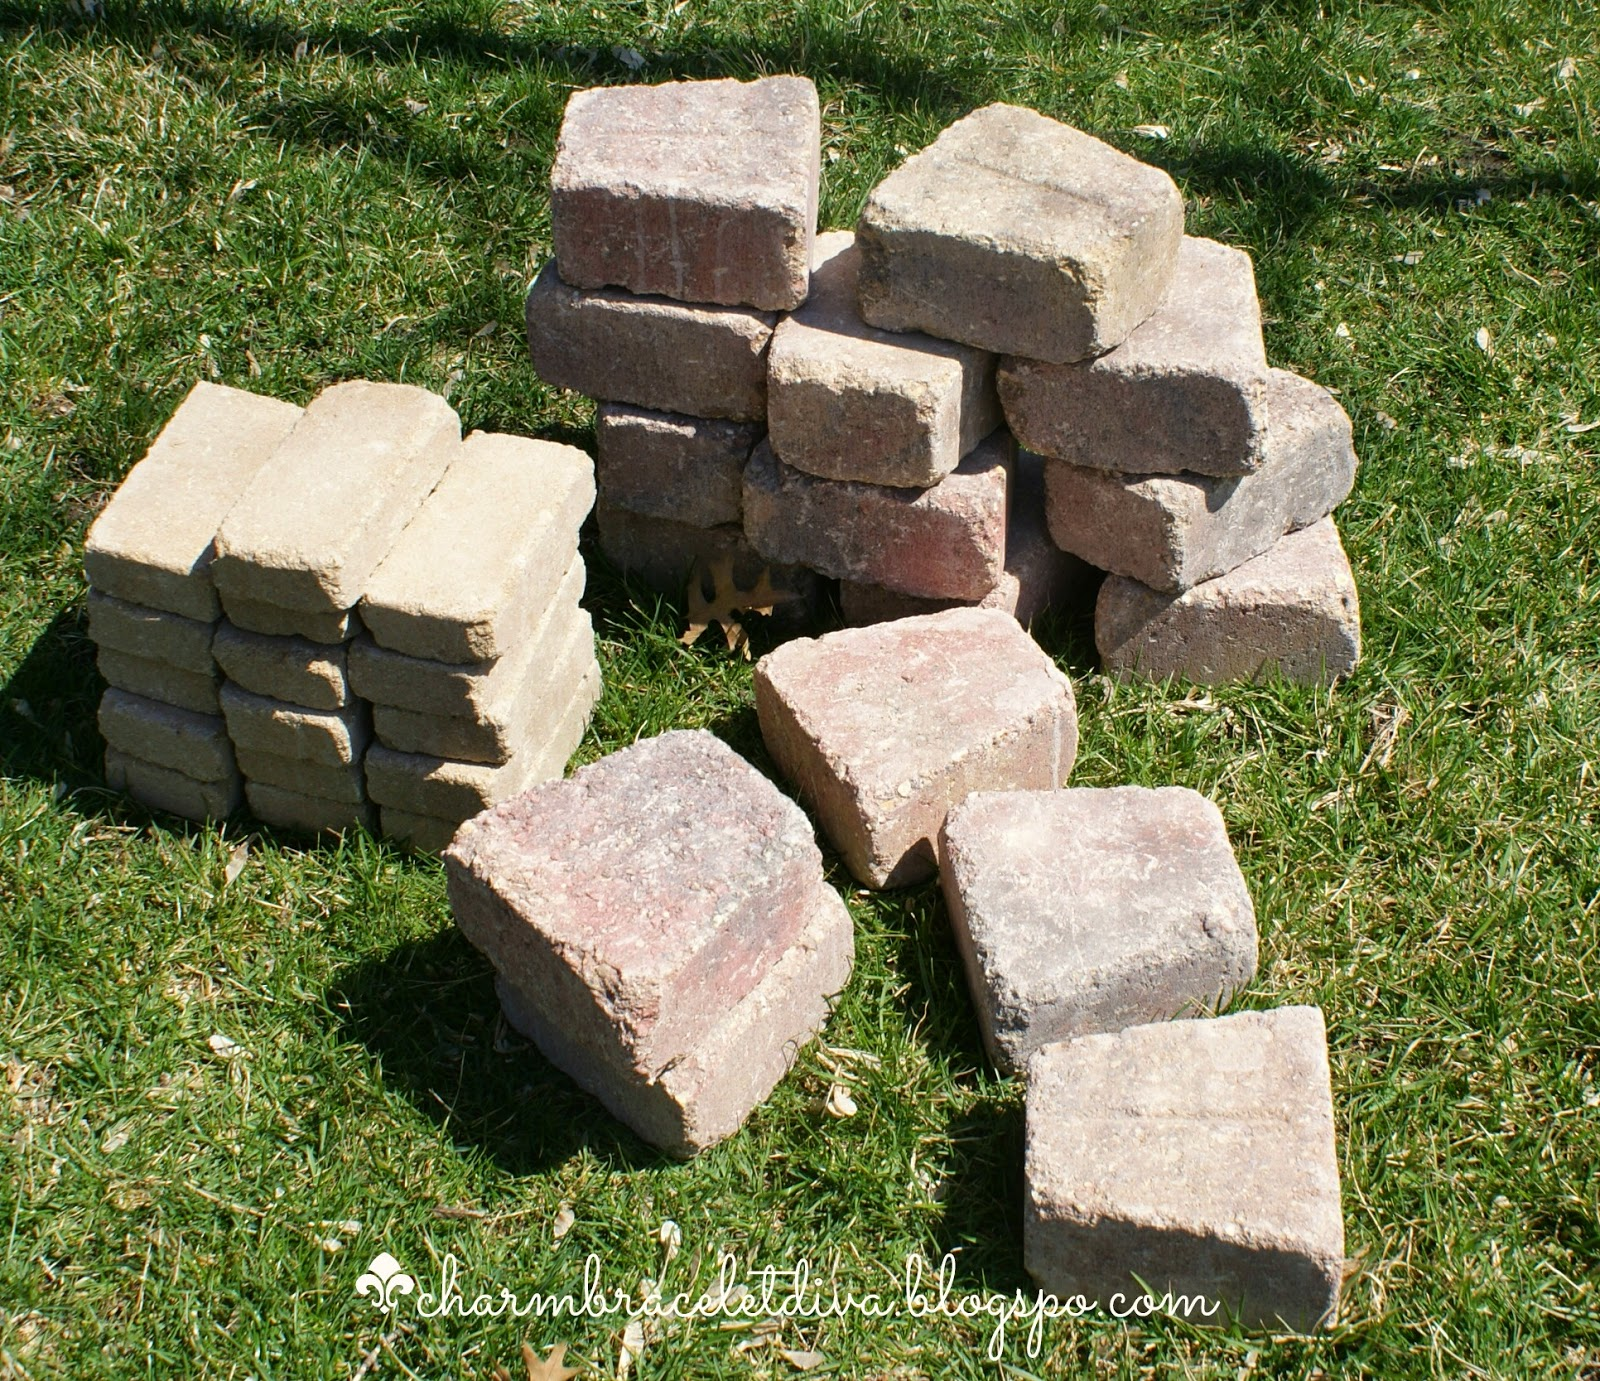 Belgian wedge blocks Belgian small wall blocks